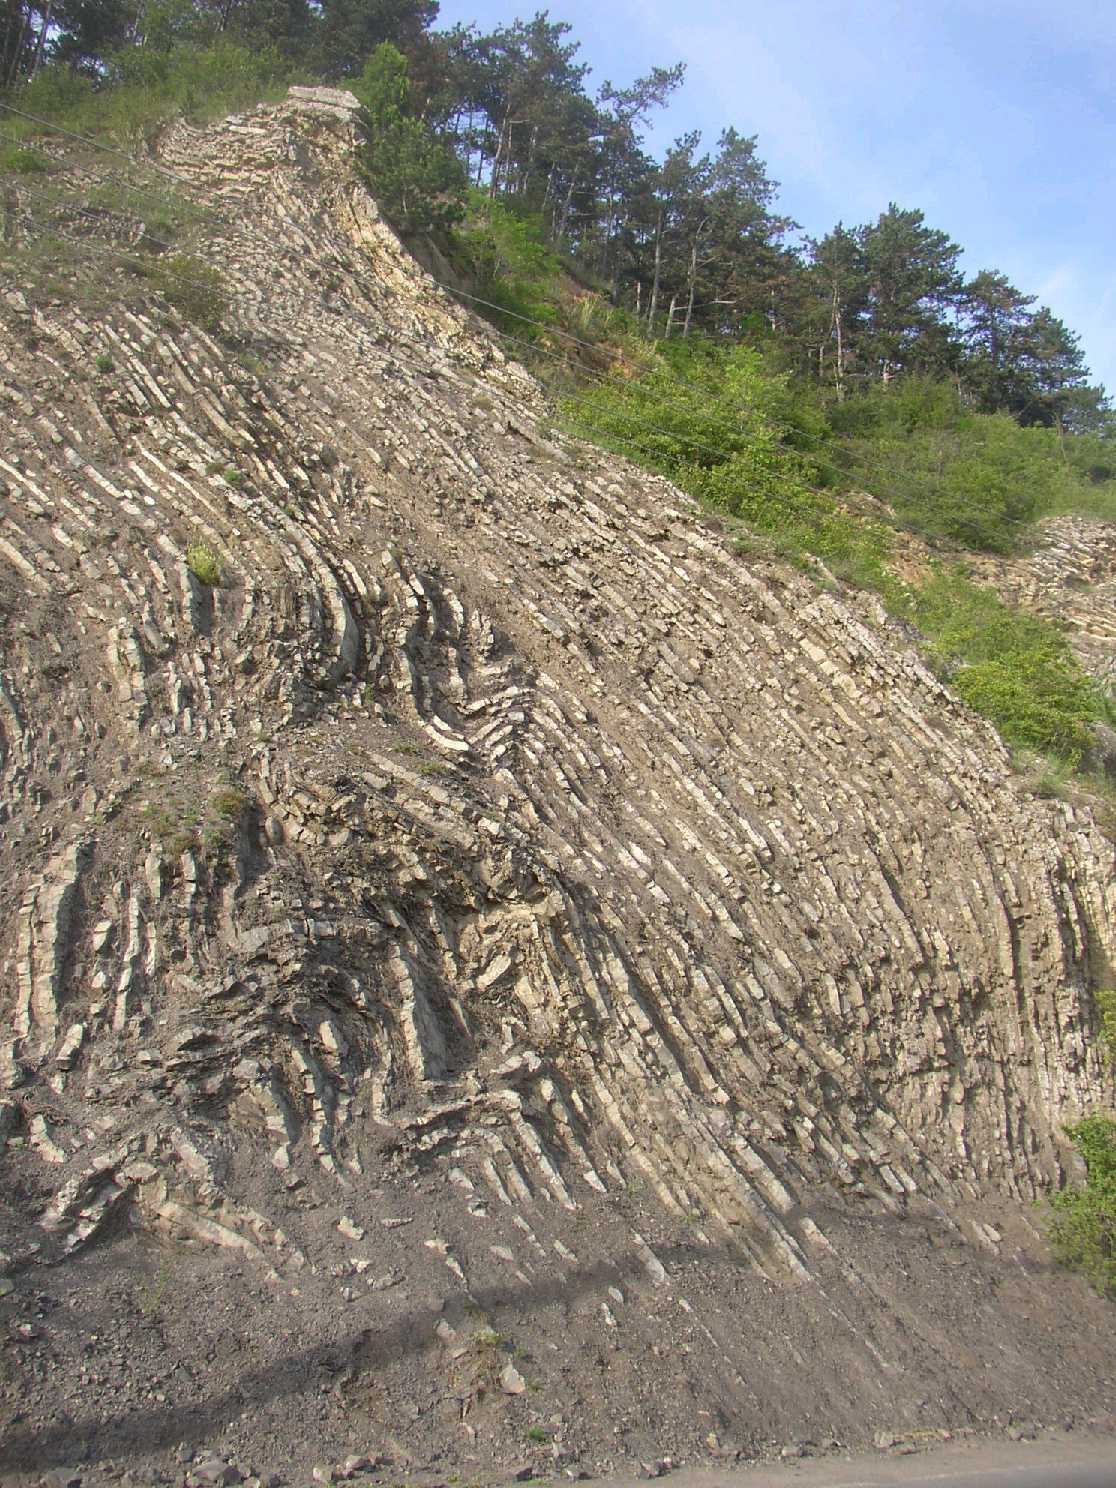 The rock formation where the layers of limestone are changing with the layers of slate